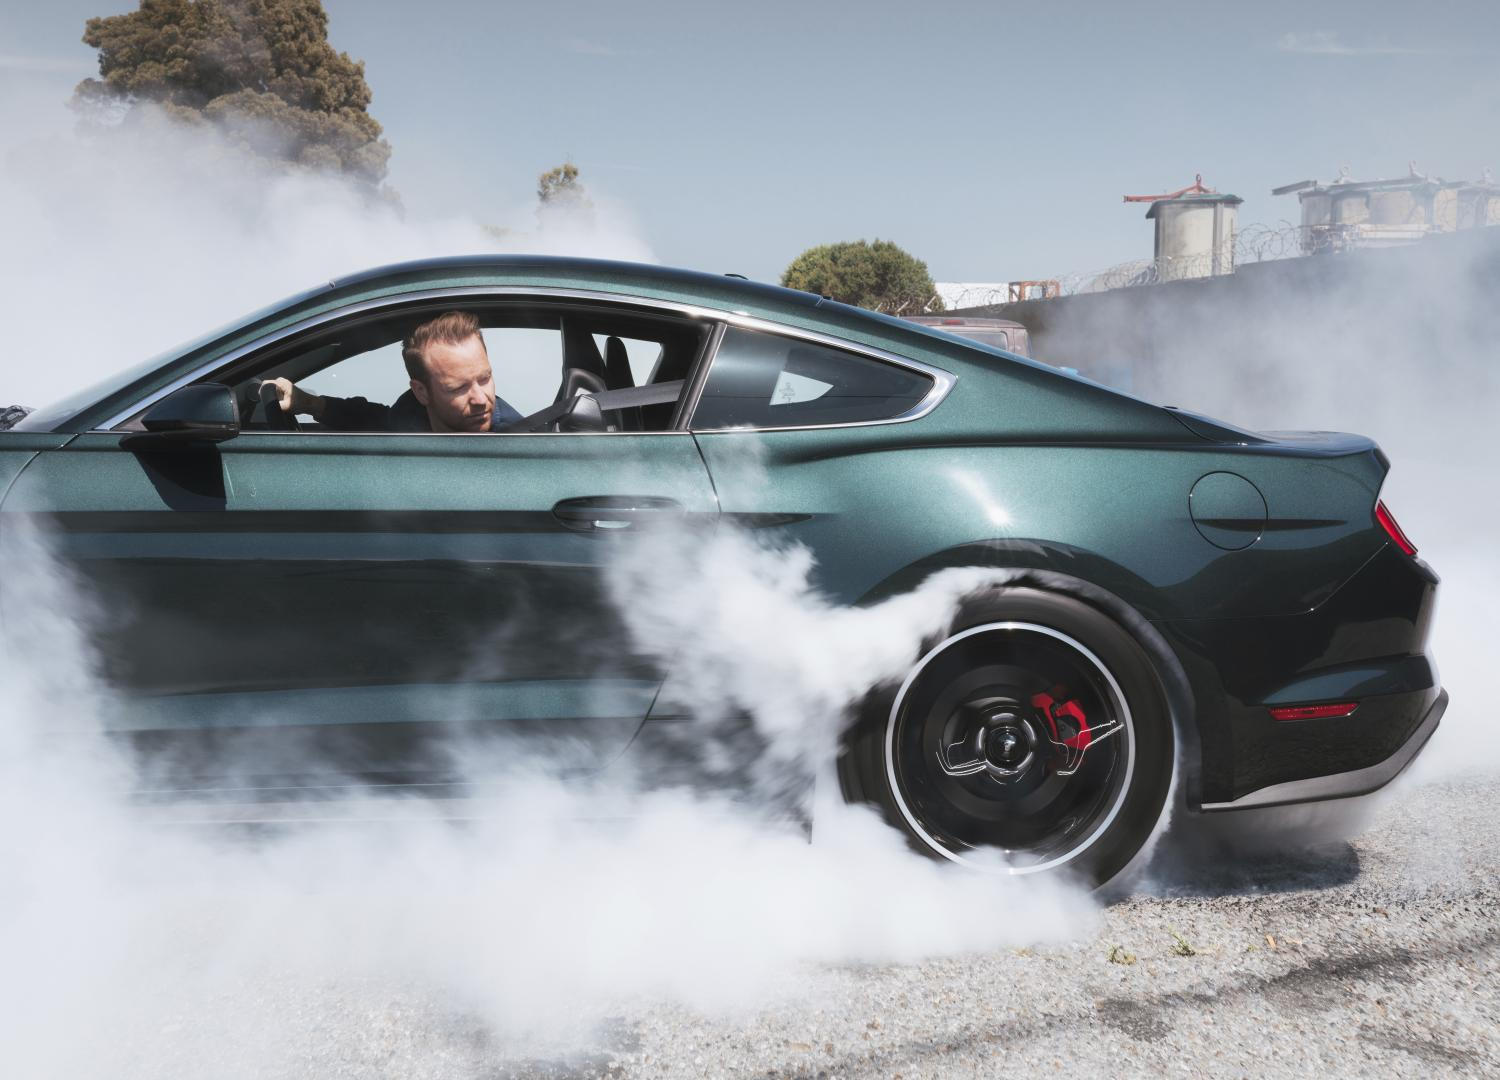 Ford Mustang Bullitt 2018 burnout